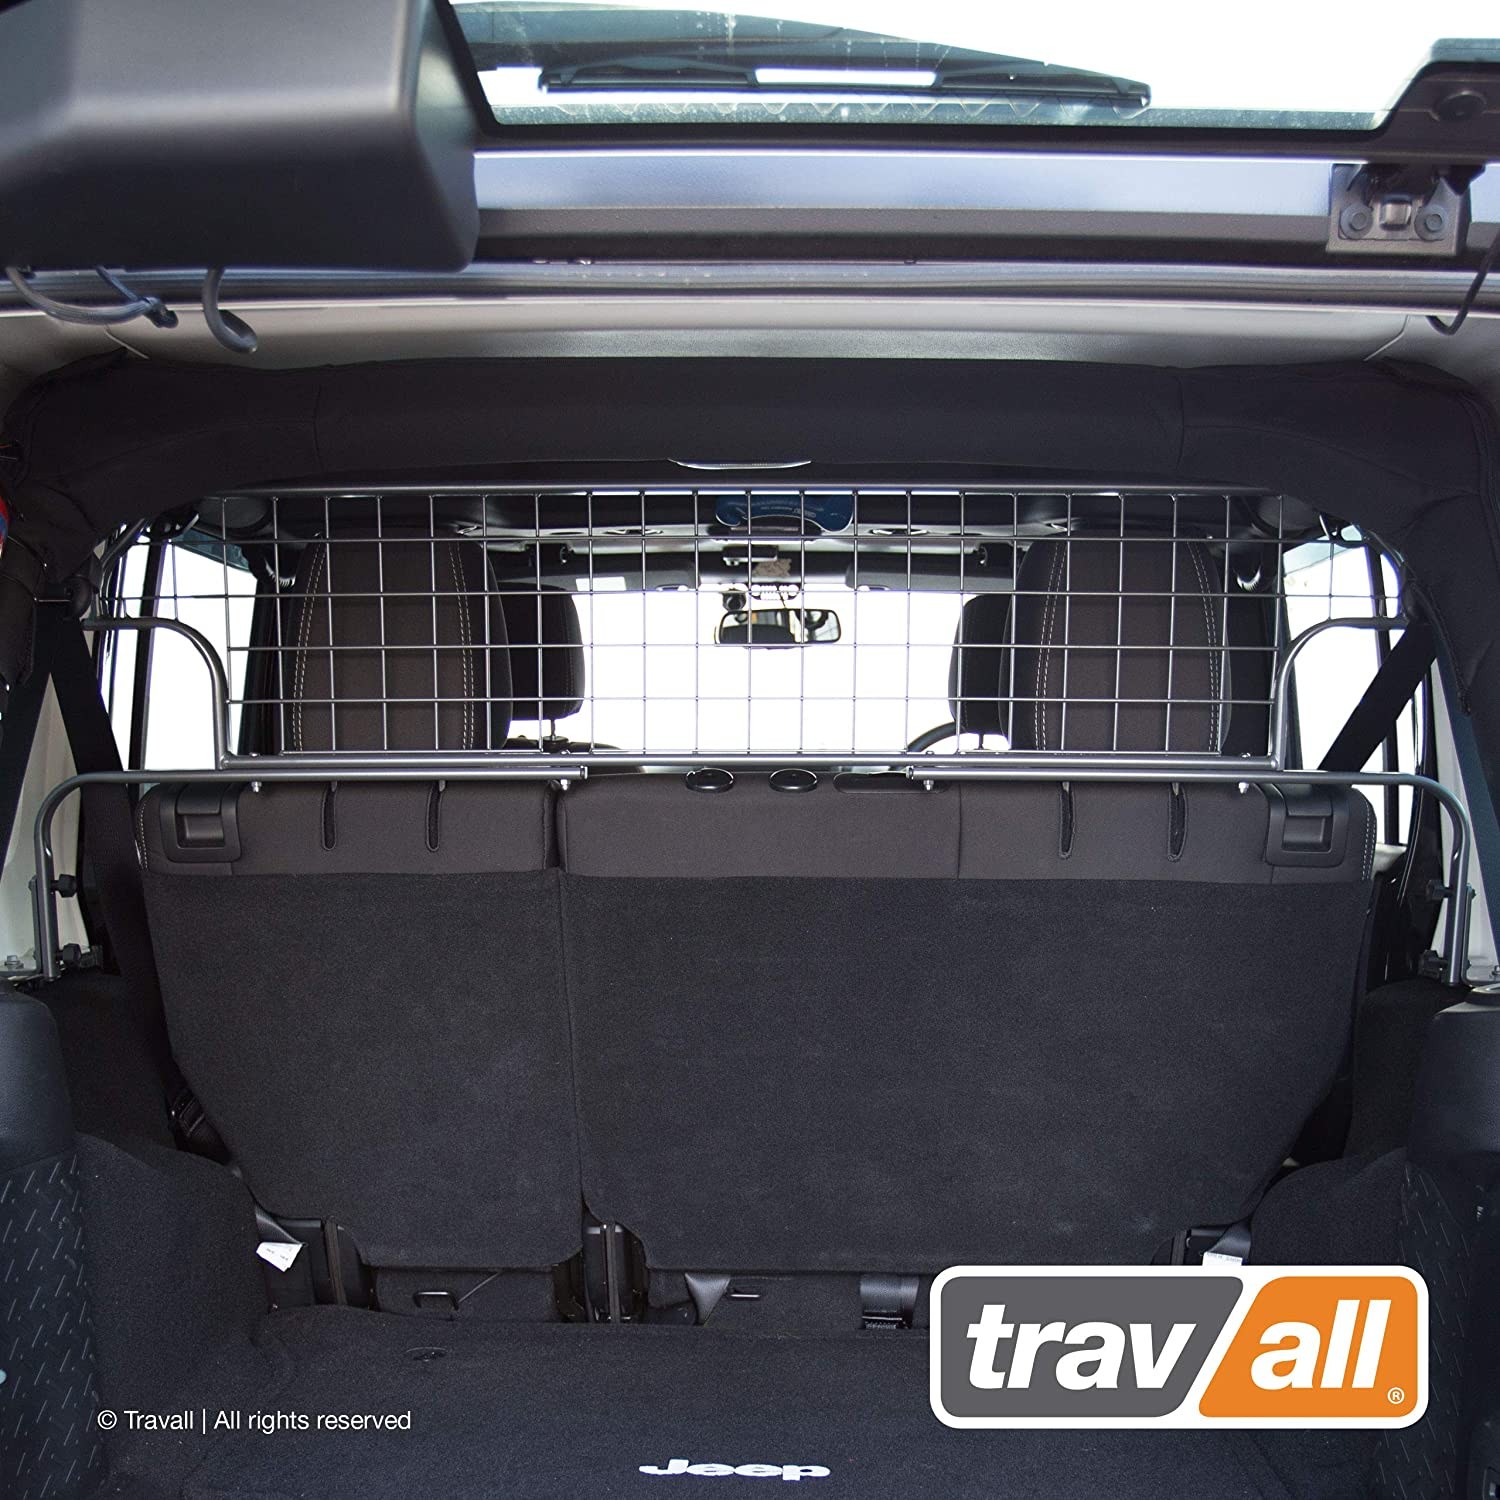 Travall Guard Compatible with Jeep Wrangler Unlimited 2006-2018 TDG1536 – Rattle-Free Steel Pet Barrier